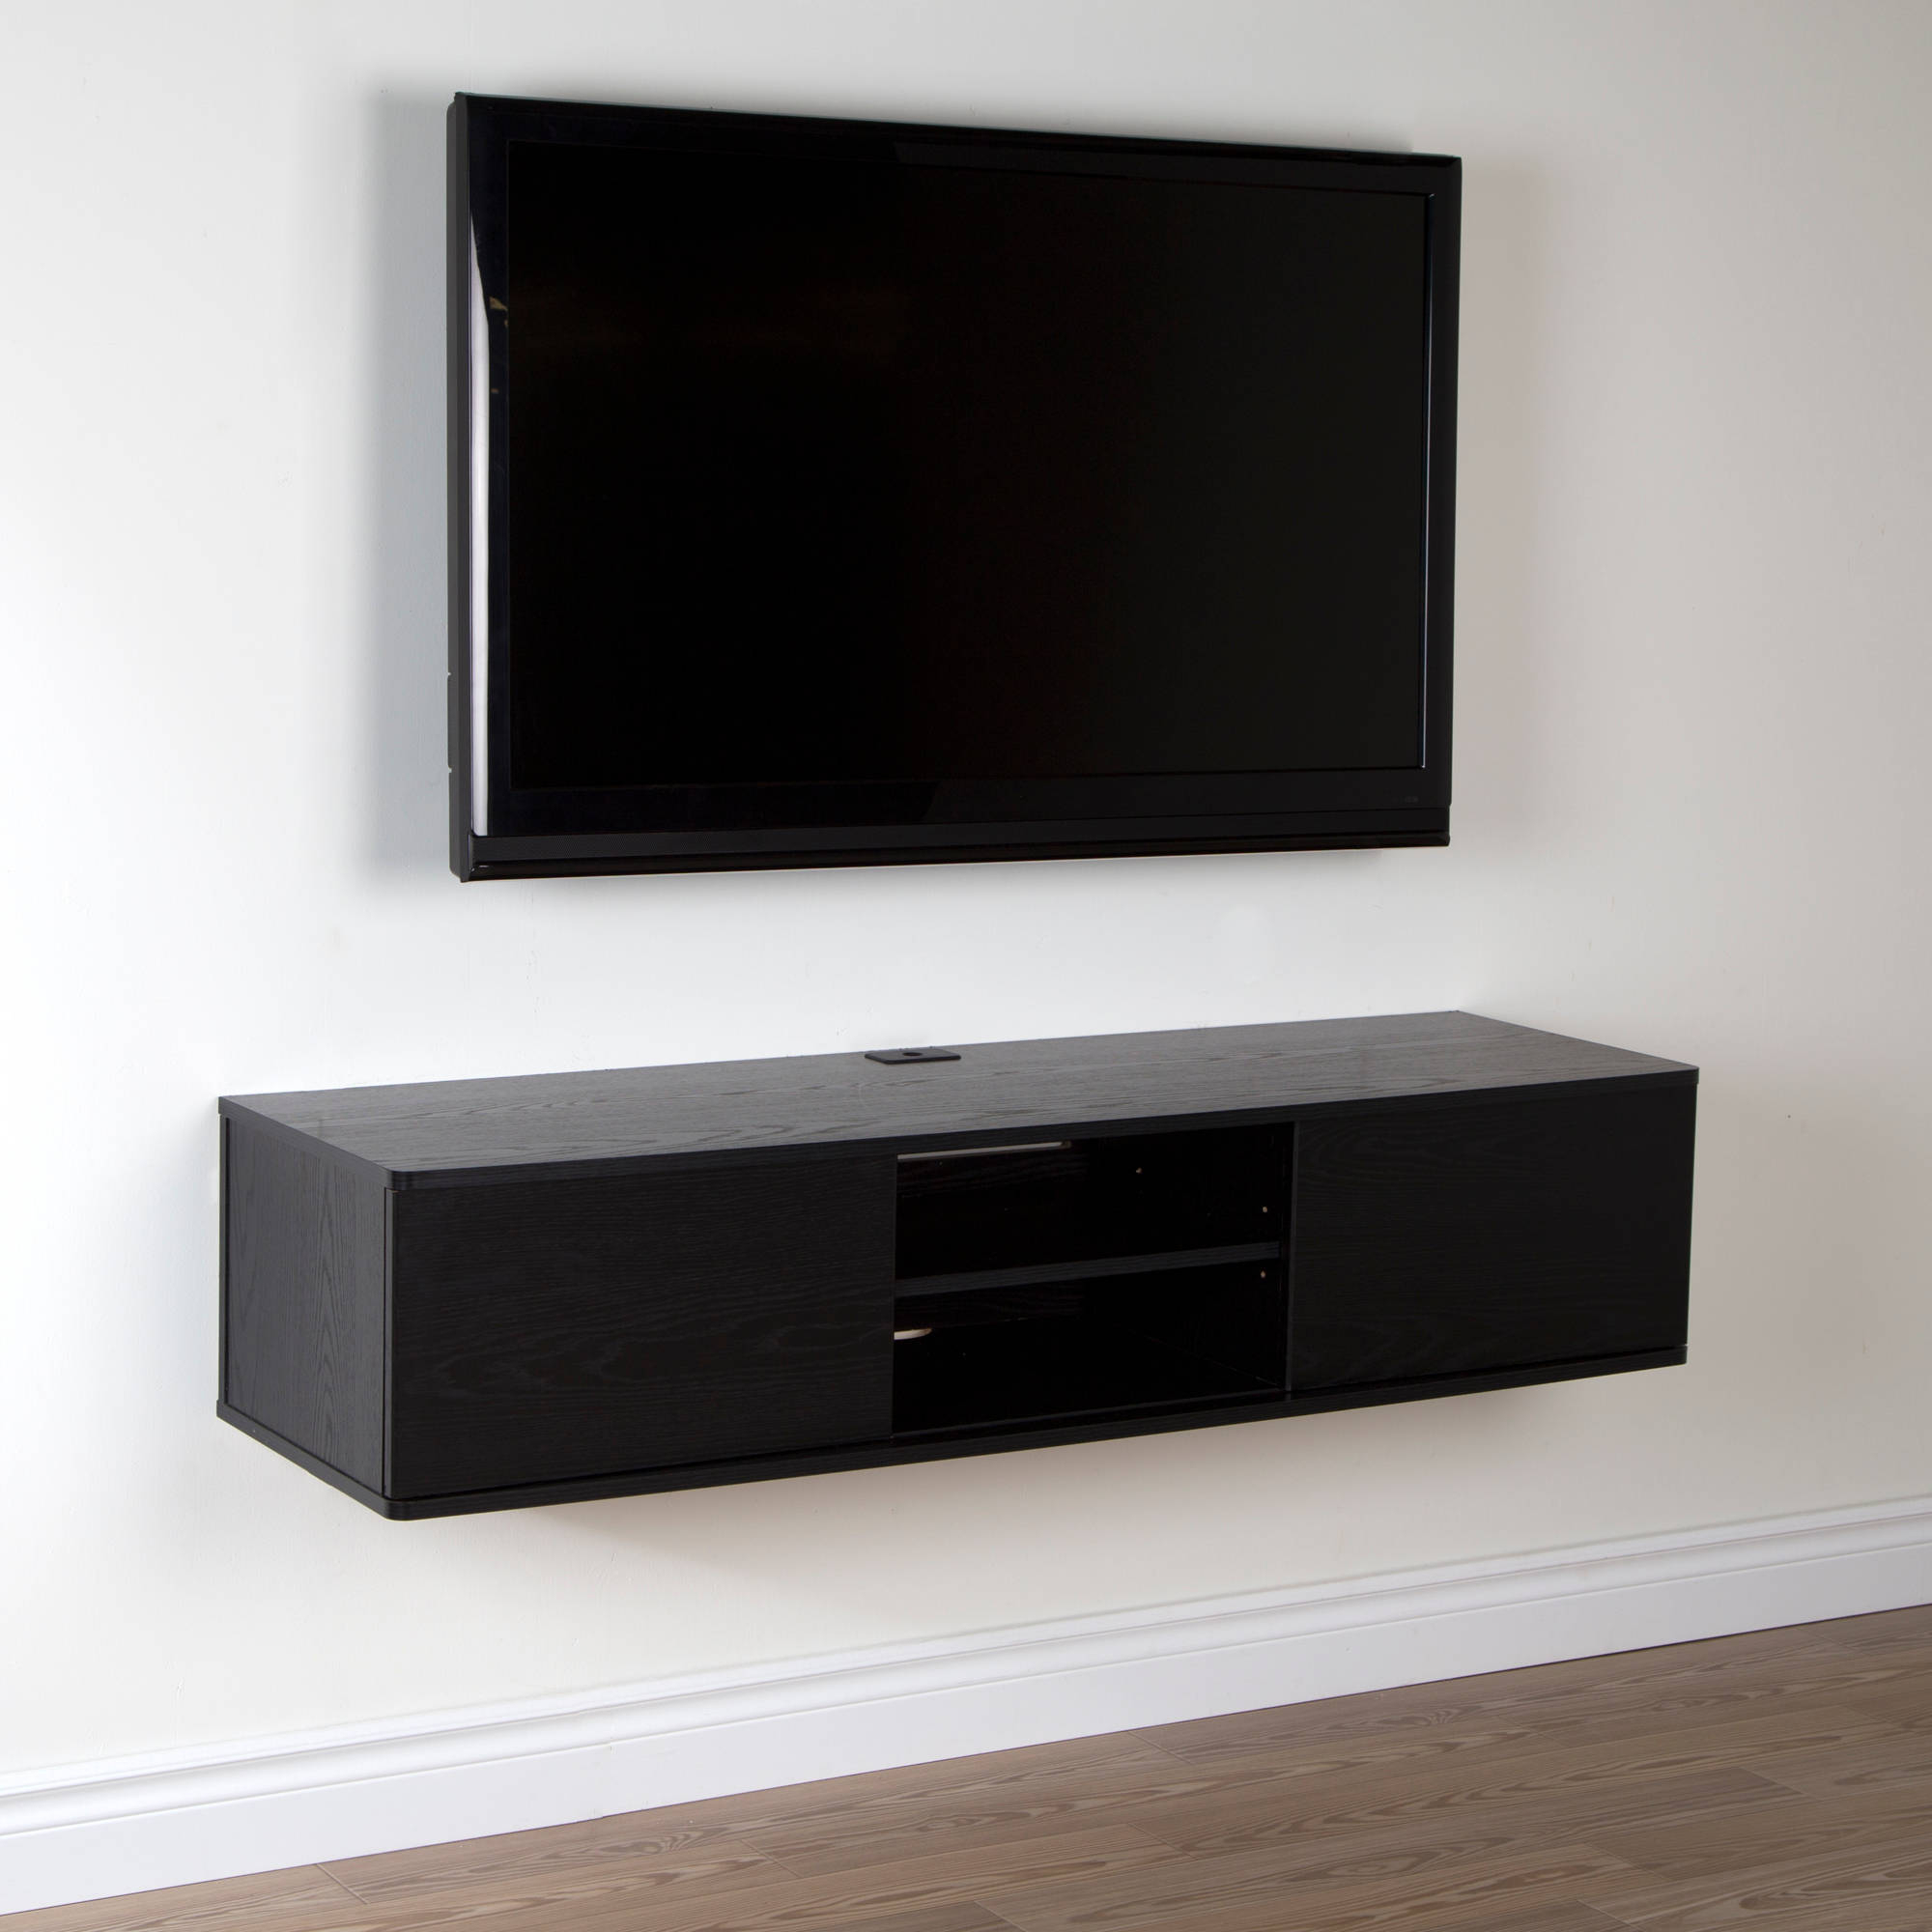 "South Shore Agora Wall Mounted Tv Stand For Tvs Up To 56"", Multiple For Most Recently Released Wall Mounted Tv Racks (Gallery 3 of 20)"